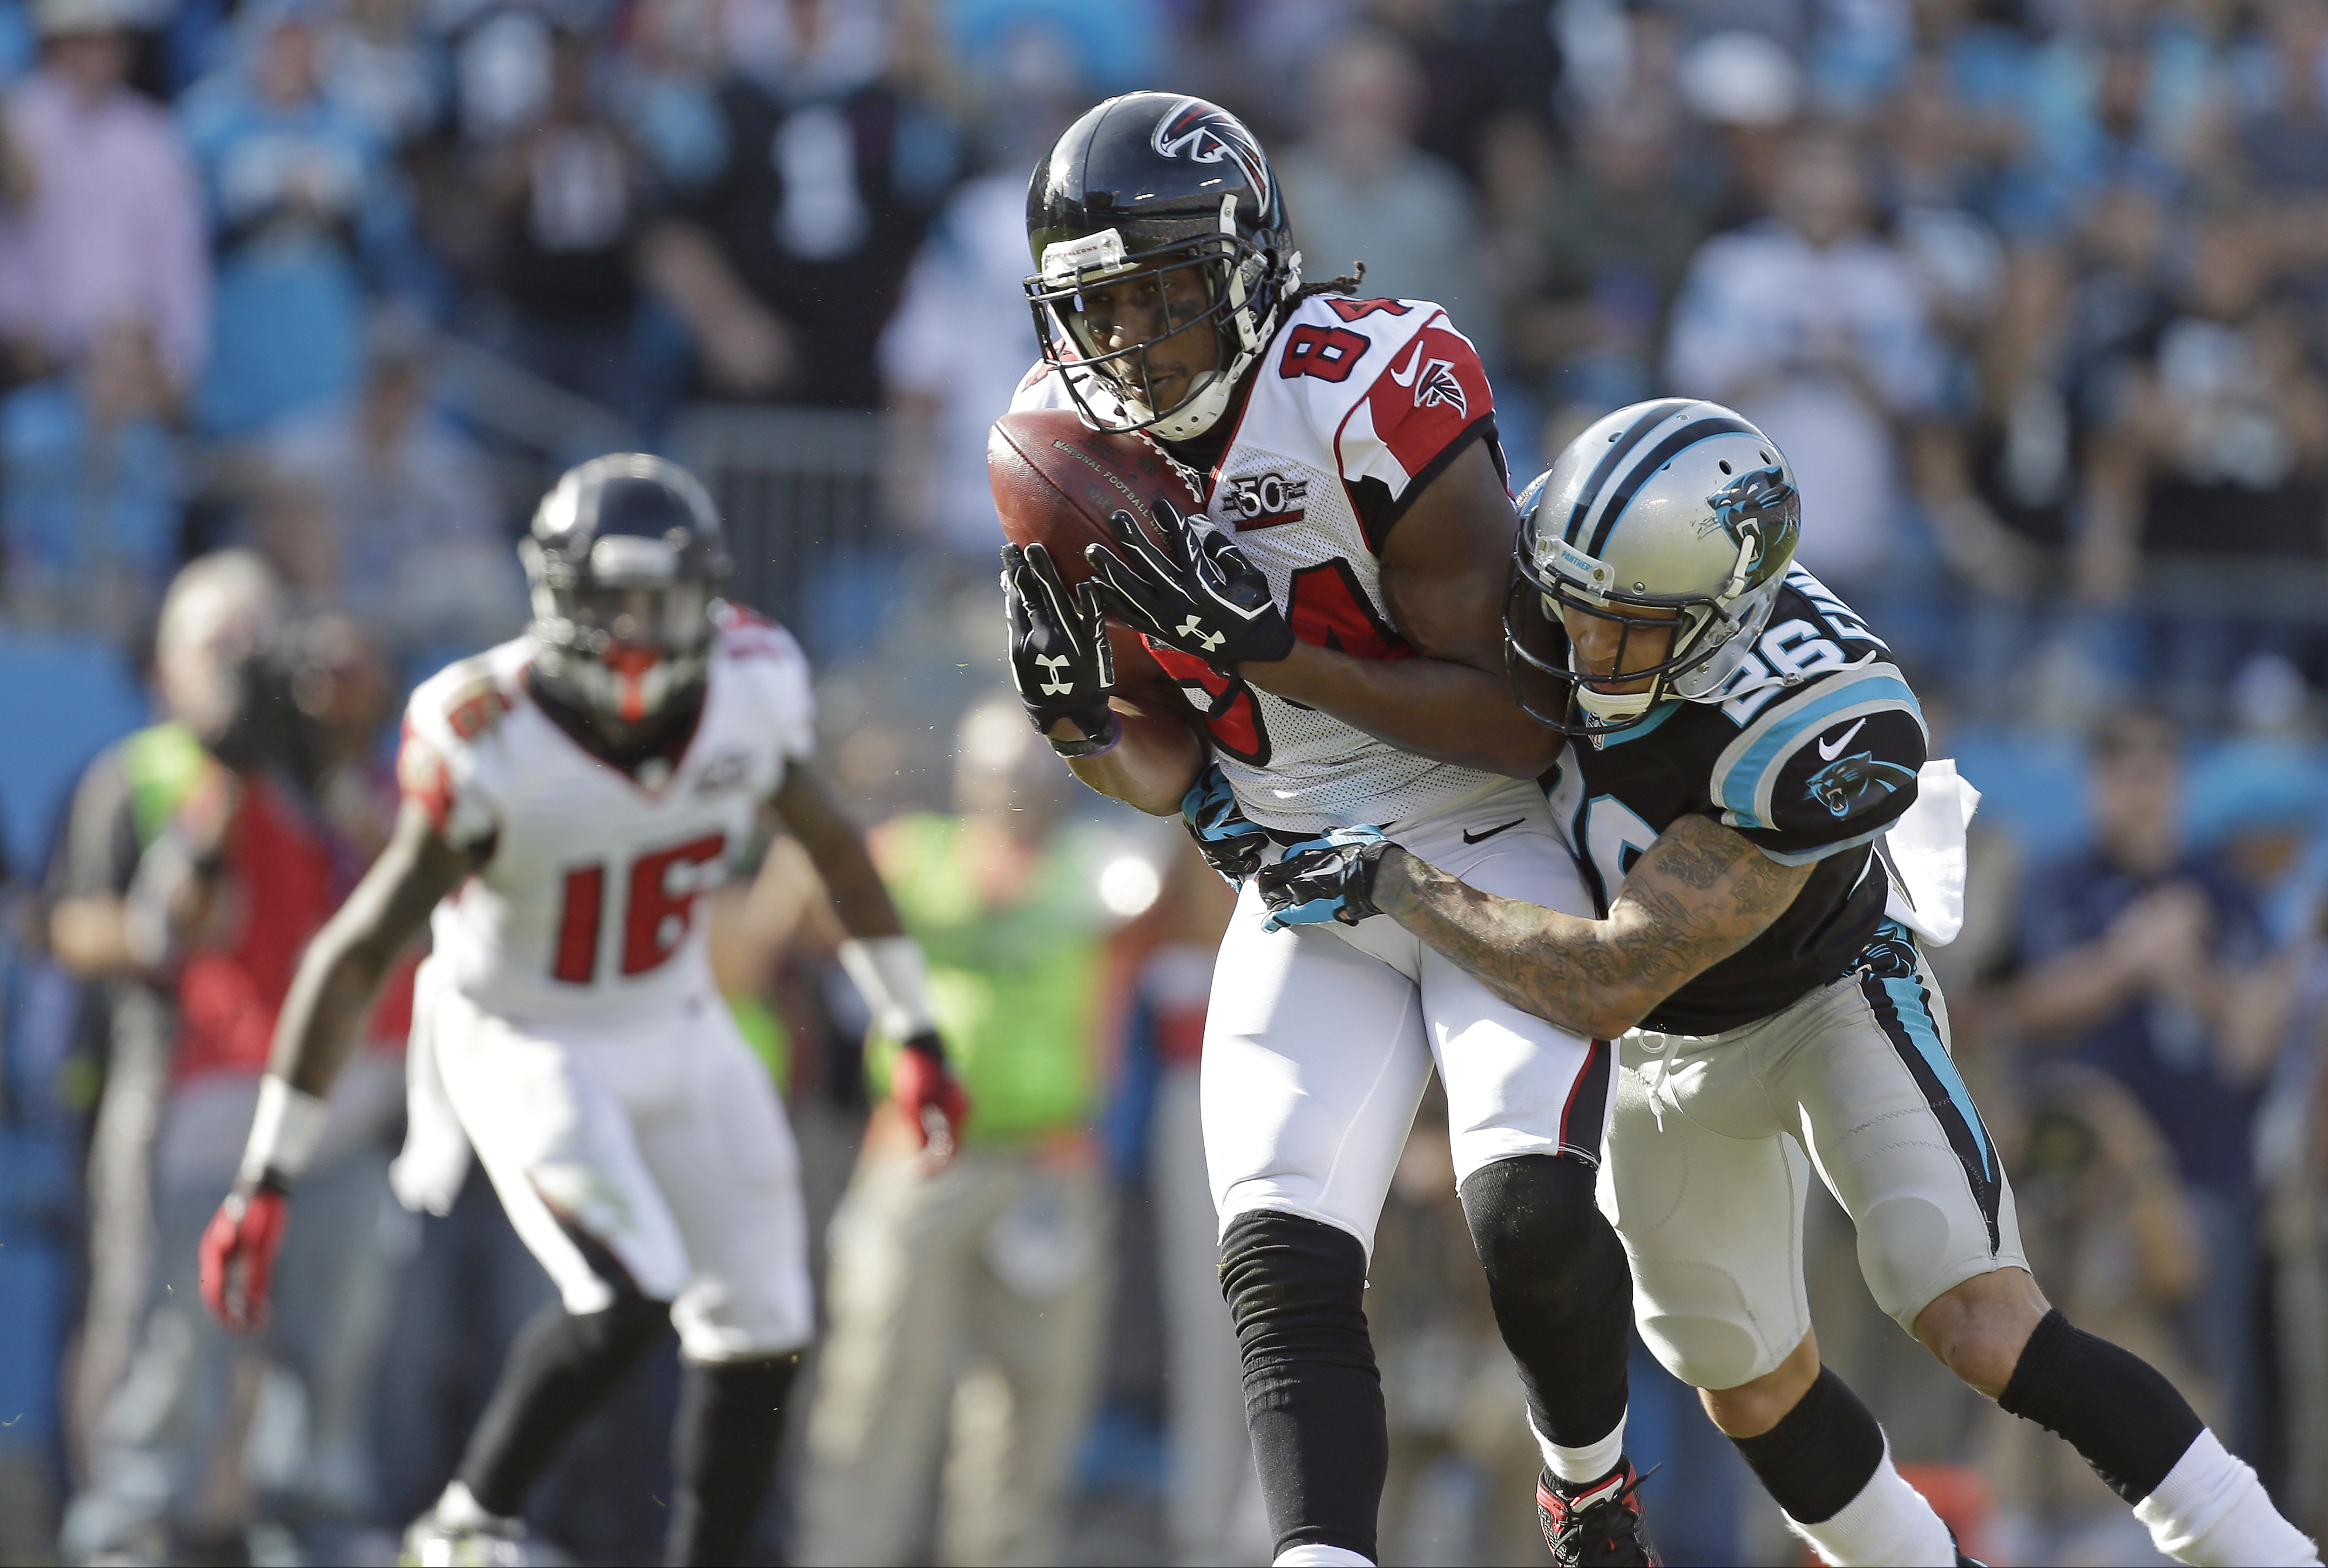 FILE - In this  Sunday, Dec. 13, 2015 file photo, Atlanta Falcons' Roddy White (84) makes a catch as Carolina Panthers' Cortland Finnegan (26) makes the hit during the first half of an NFL football game in Charlotte, N.C.  The Atlanta Falcons have release